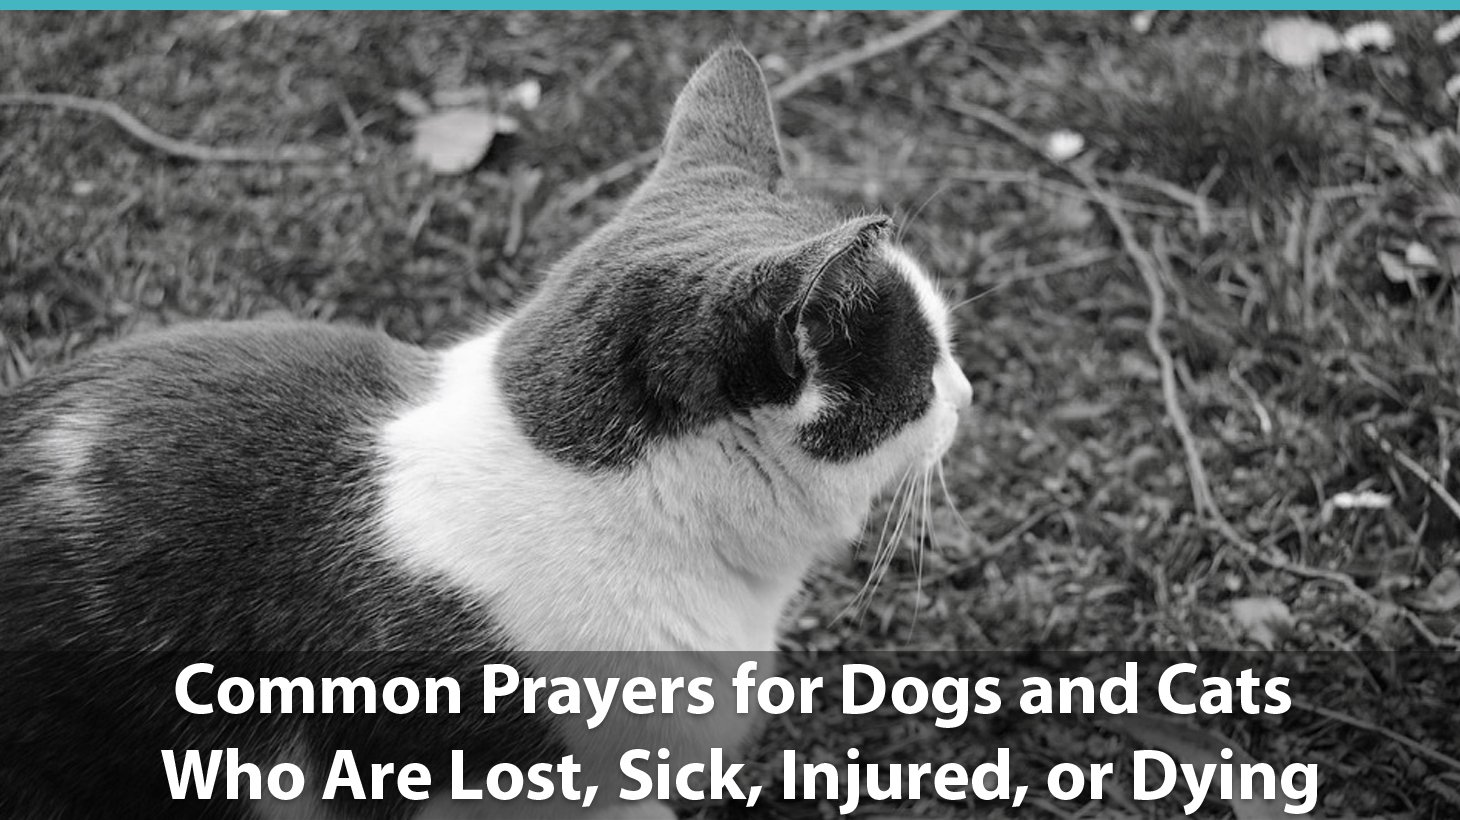 Common Prayers for Dogs and Cats Who Are Lost, Sick, Injured, or Dying